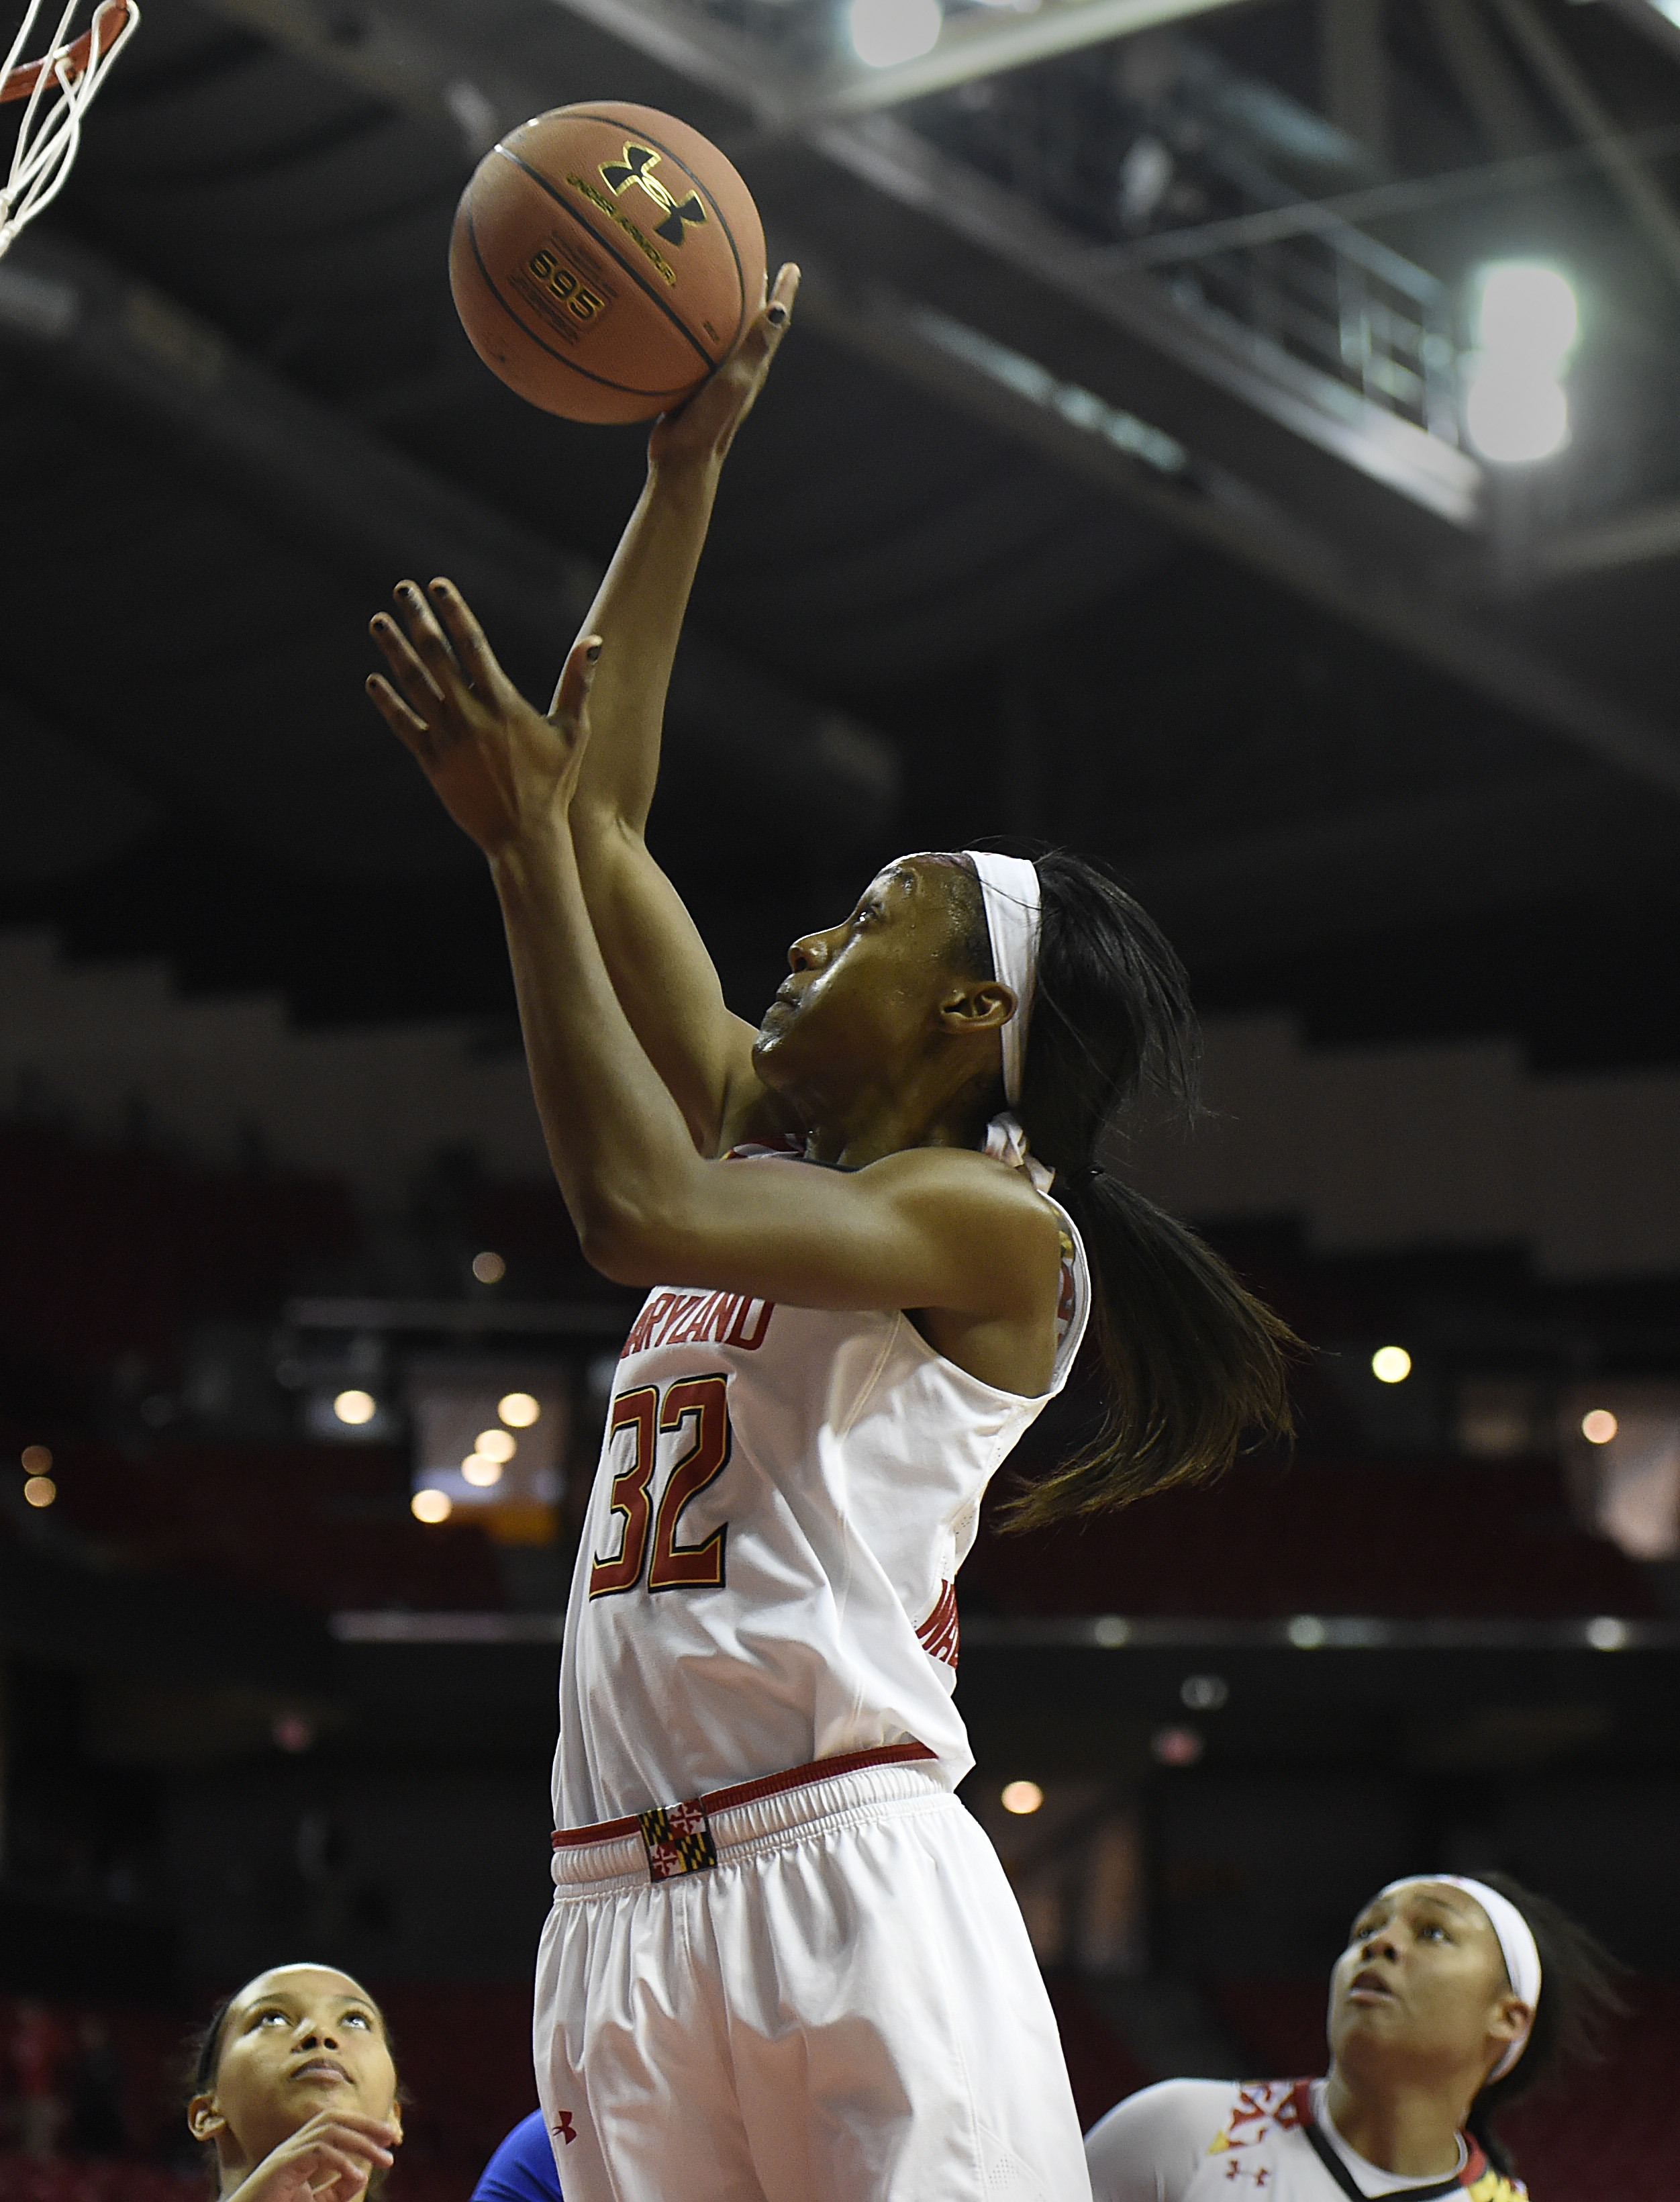 Maryland's  Shatori Walker-Kimbrough scores against Central Connecticut State in the first half of an NCAA college basketball game, Saturday, Dec. 5, 2015, in College Park, Md. (AP Photo/Gail Burton)